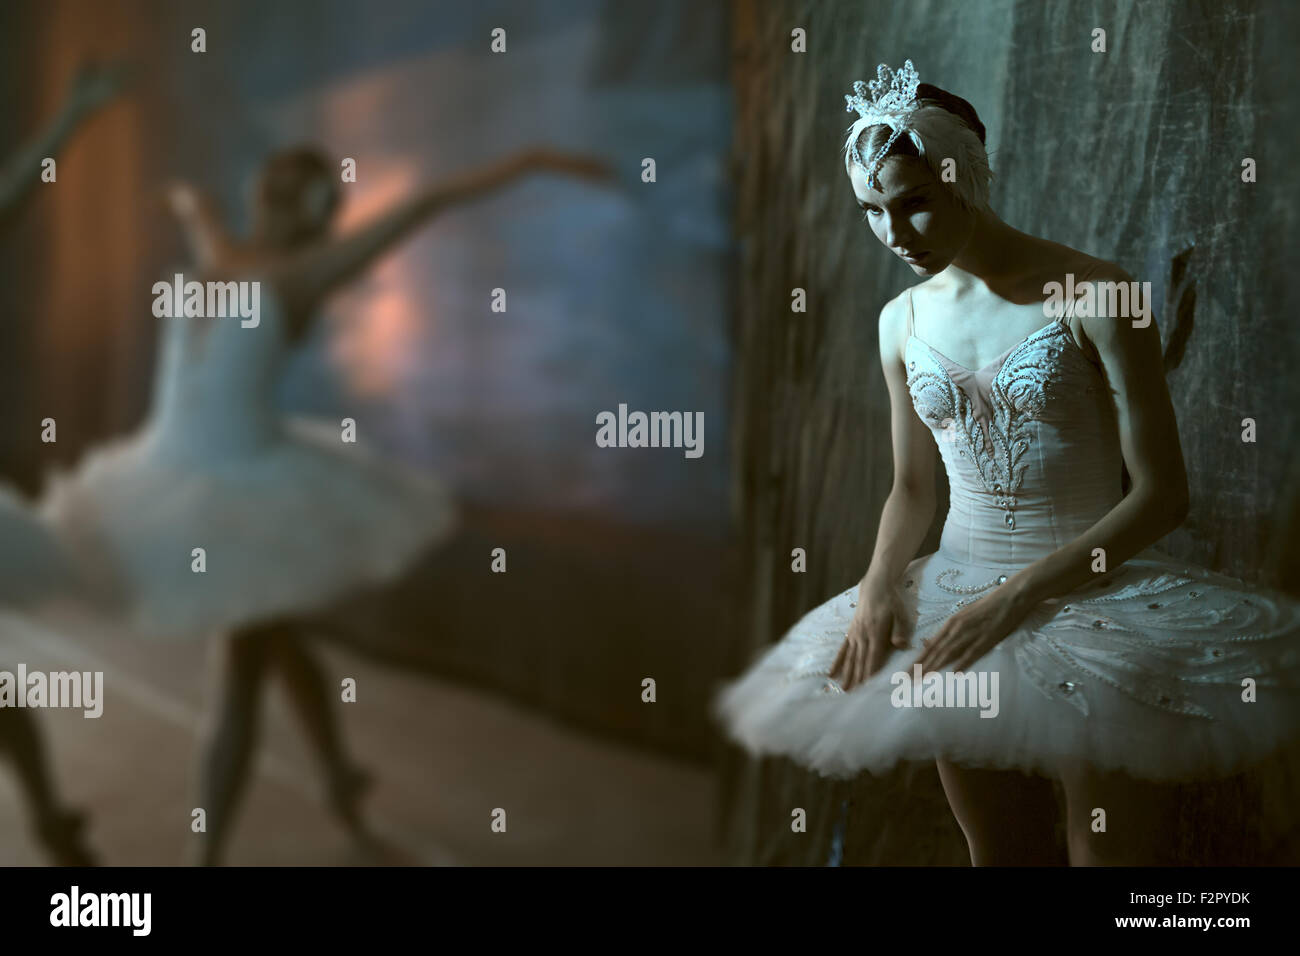 Ballerina standing backstage before going on stage - Stock Image